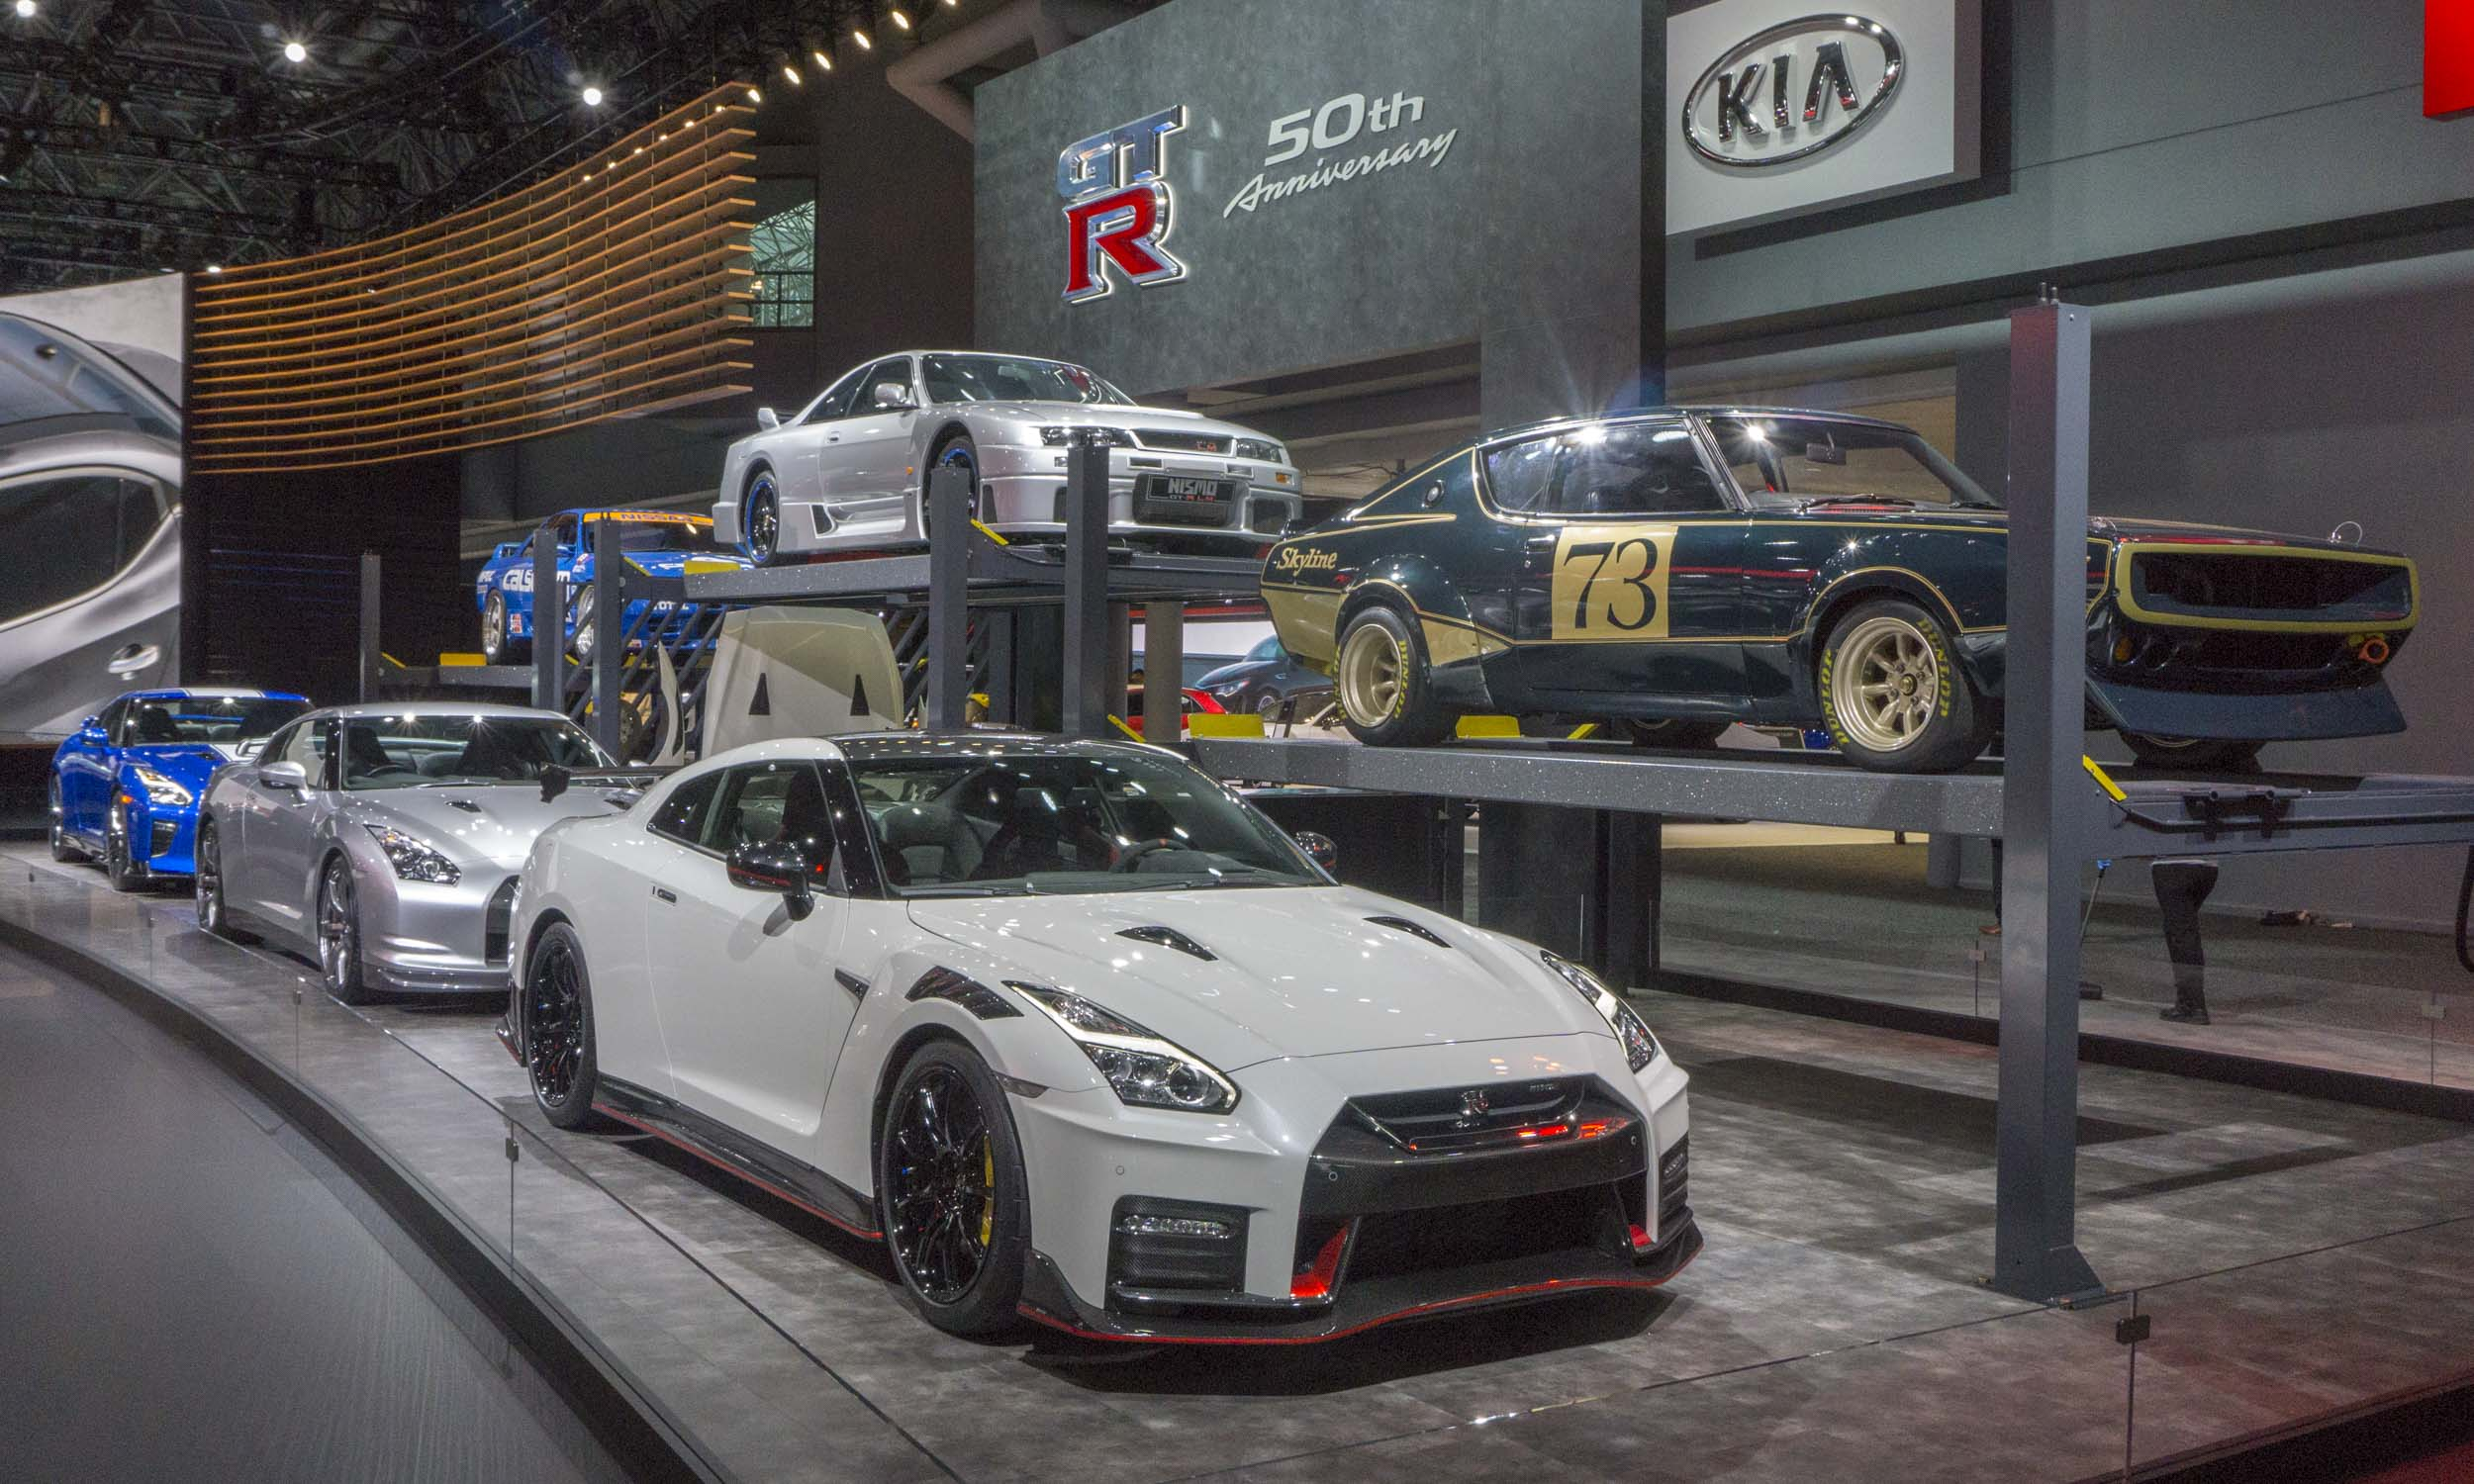 2019 New York Auto Show: Luxury and Performance Cars